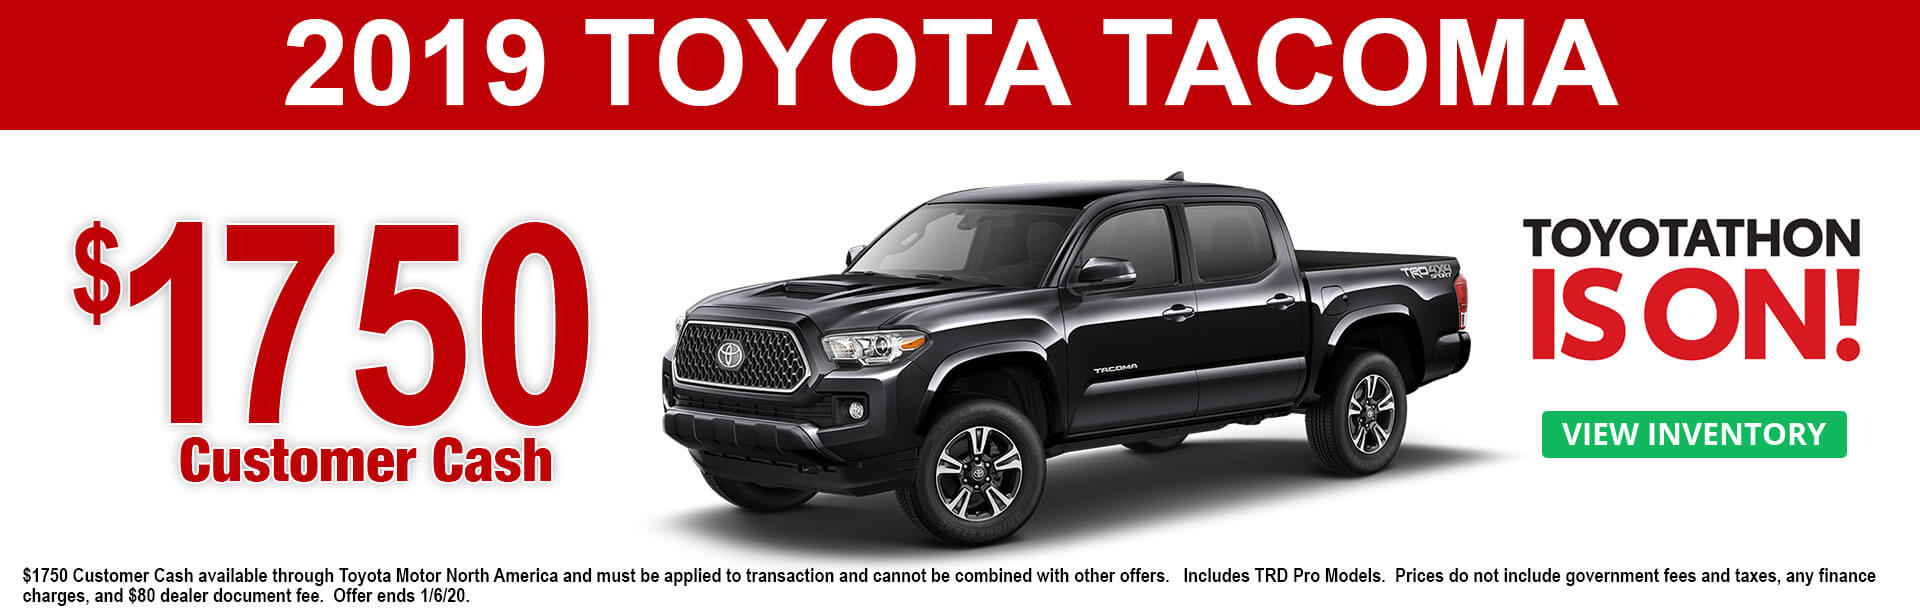 2019 Toyota Tacoma Cash Offer